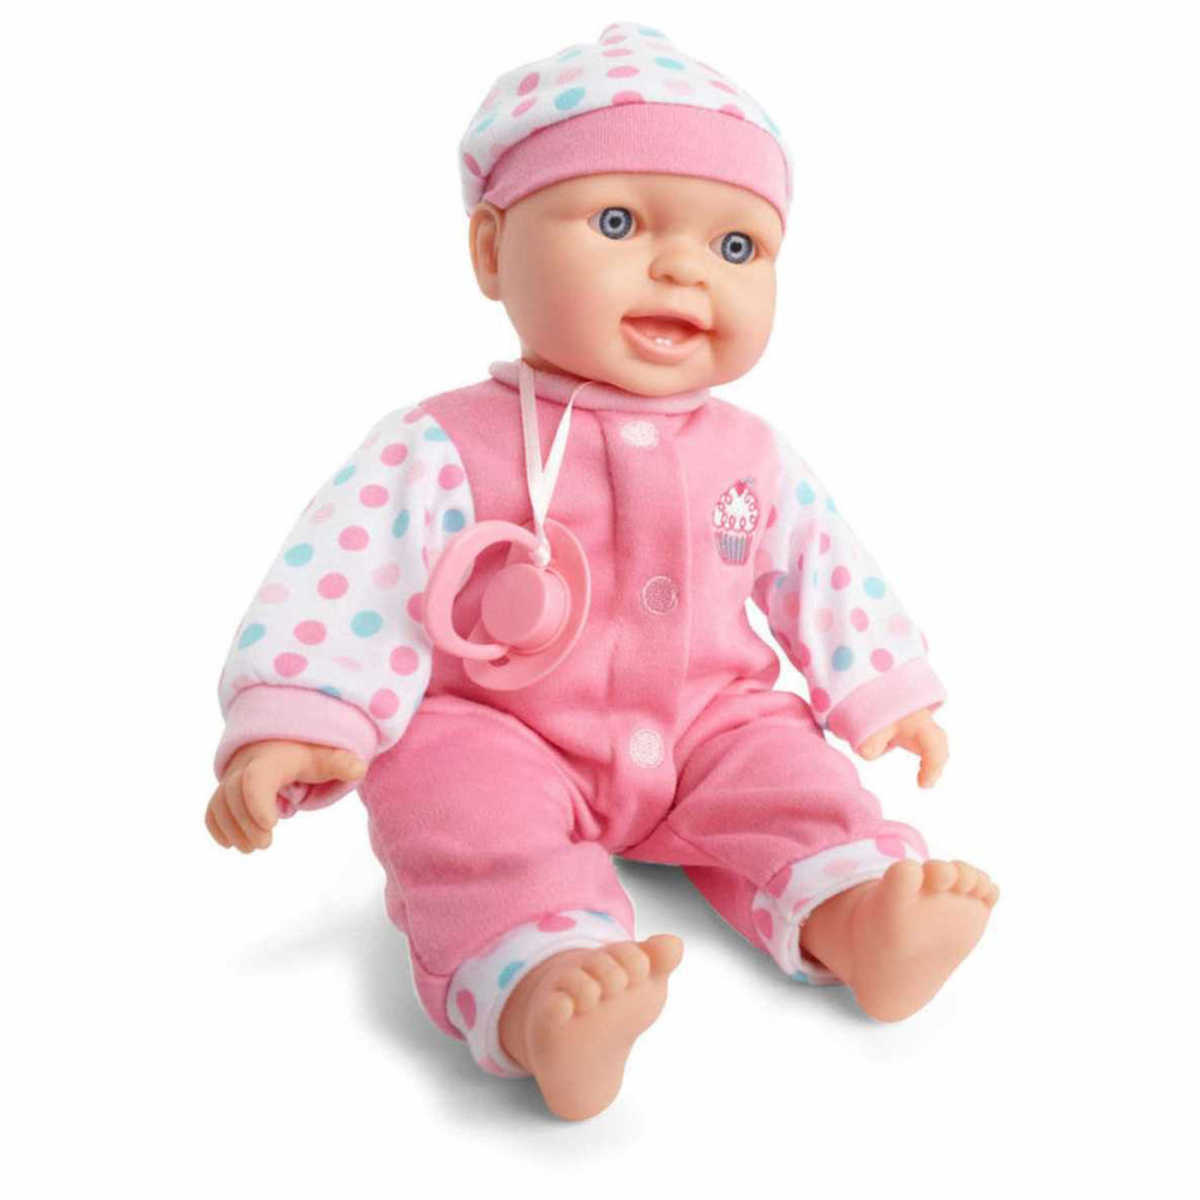 Tinkers Baby Doll 35 cm Pink